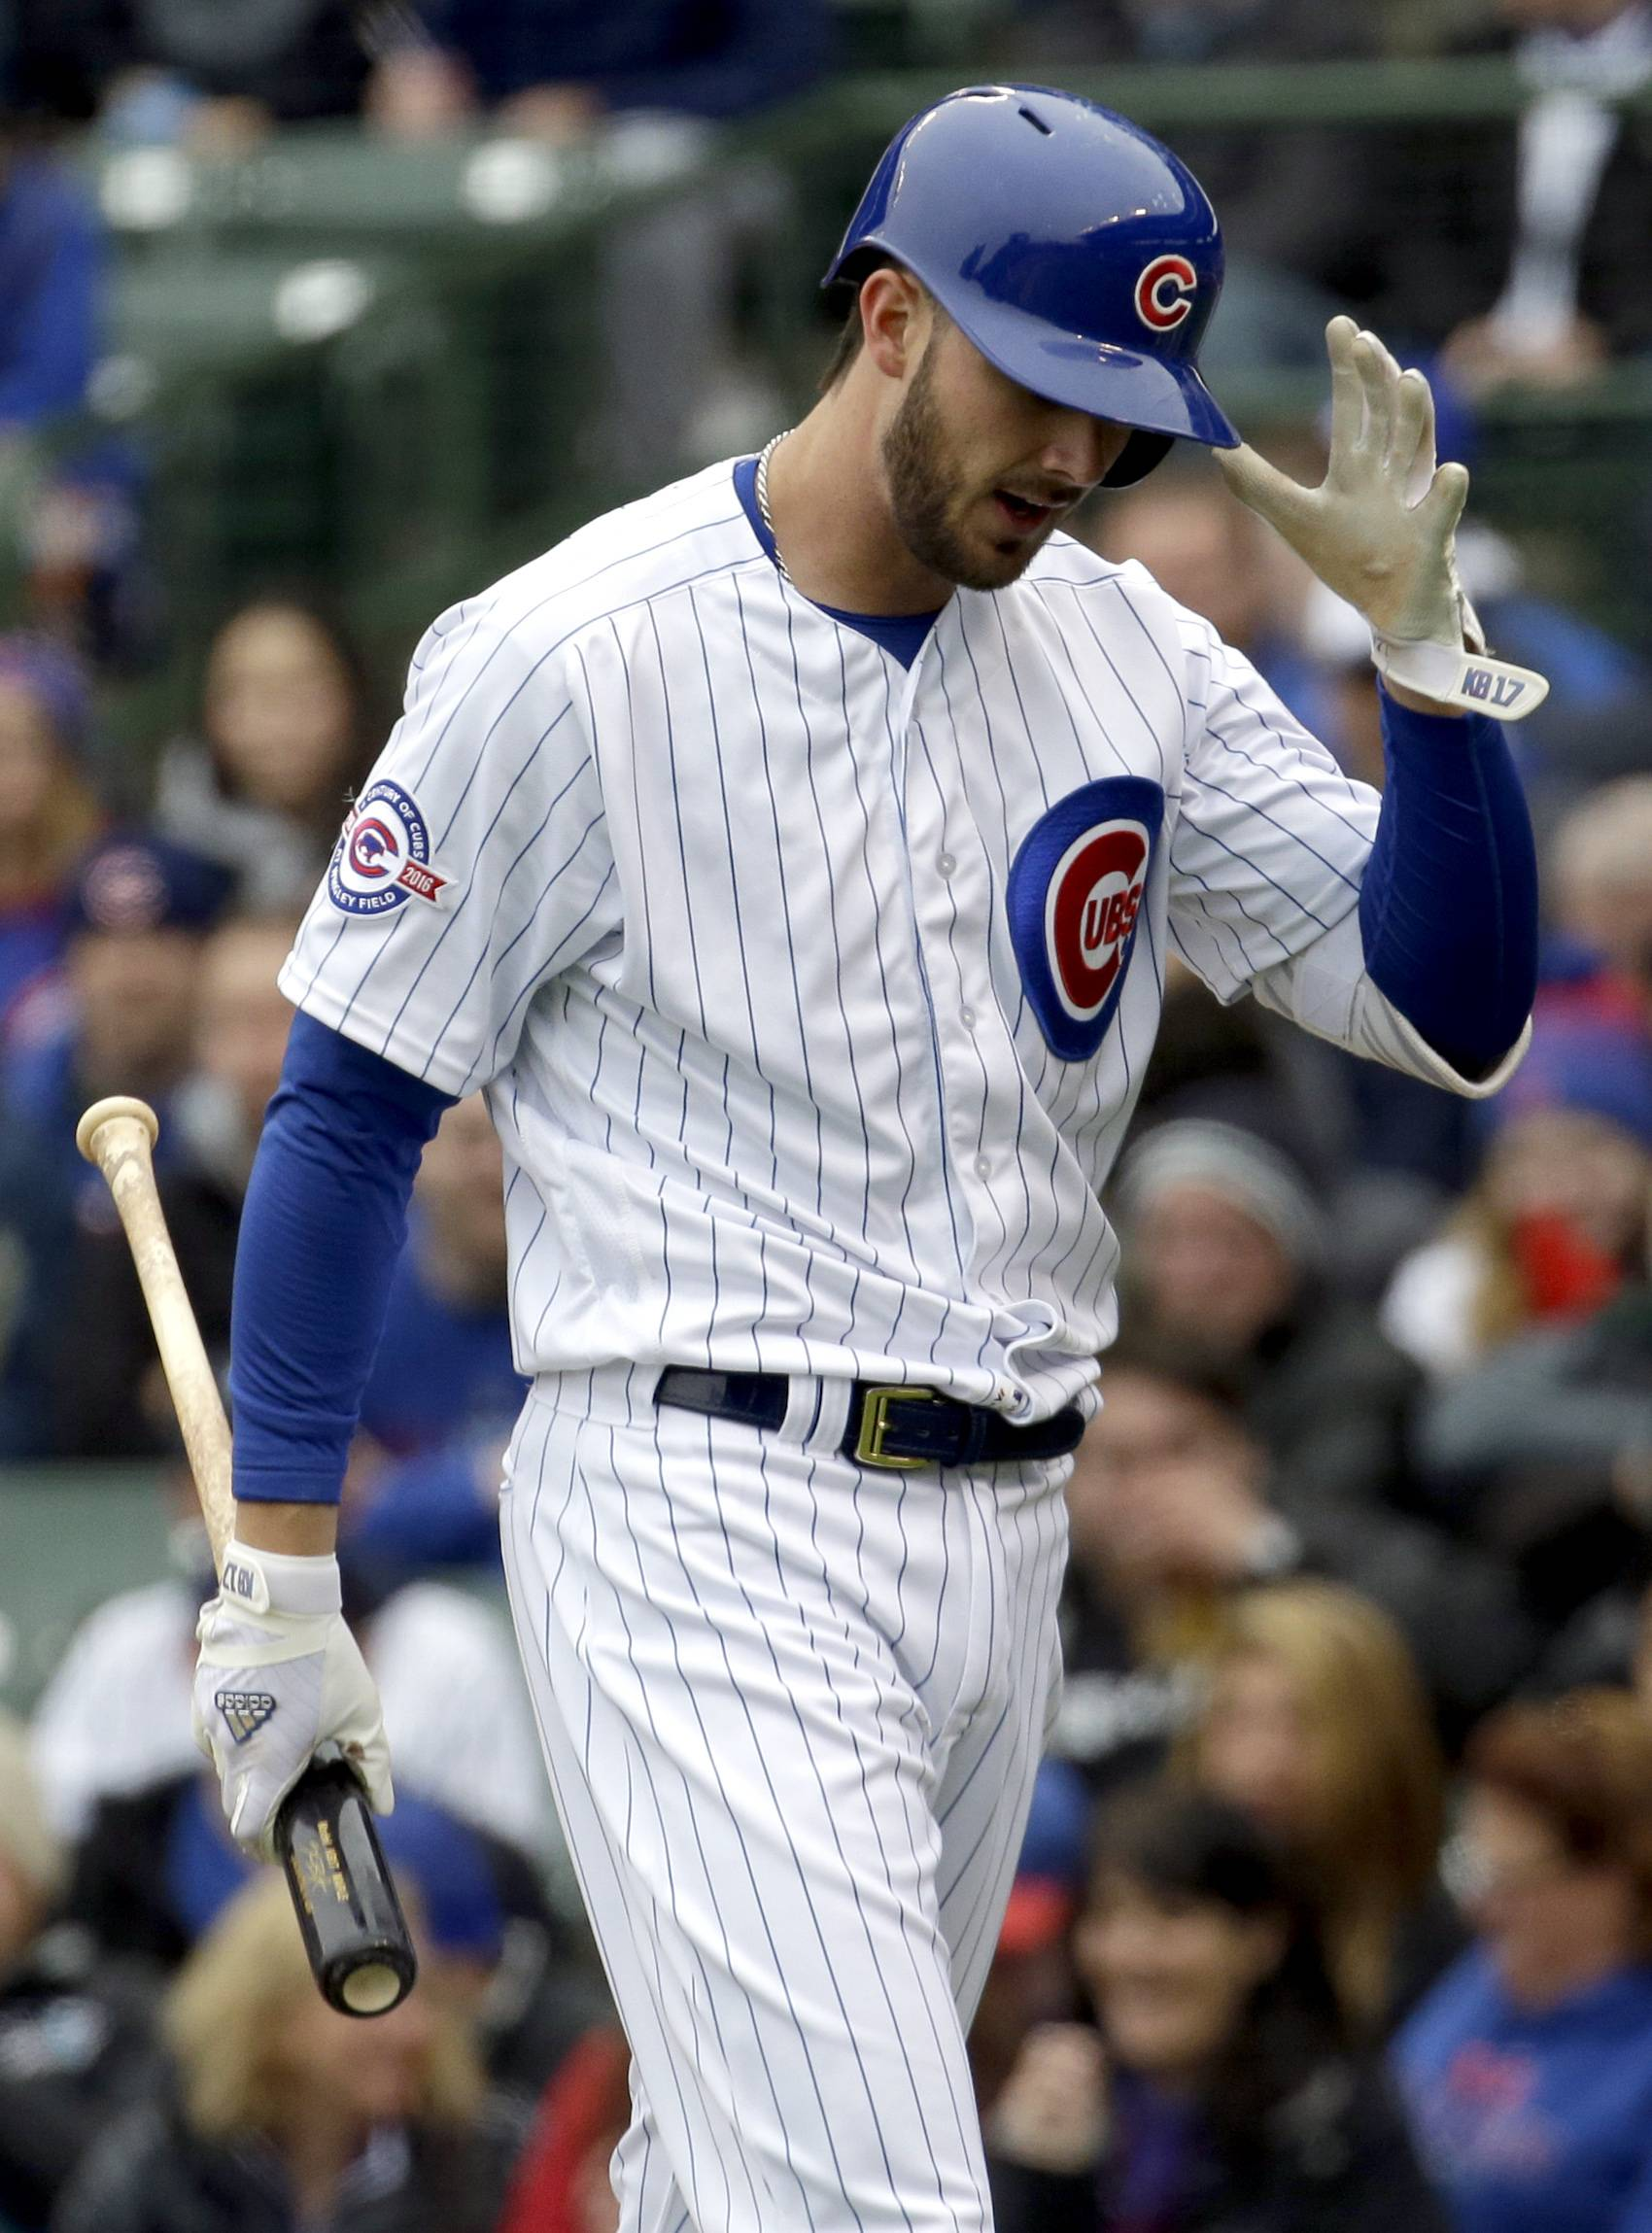 Chicago Cubs' Kris Bryant reacts after striking out during the first inning against the Atlanta Braves Sunday in Chicago. It was Bryant's first game back after spraining his ankle last Thursday against the Brewers.